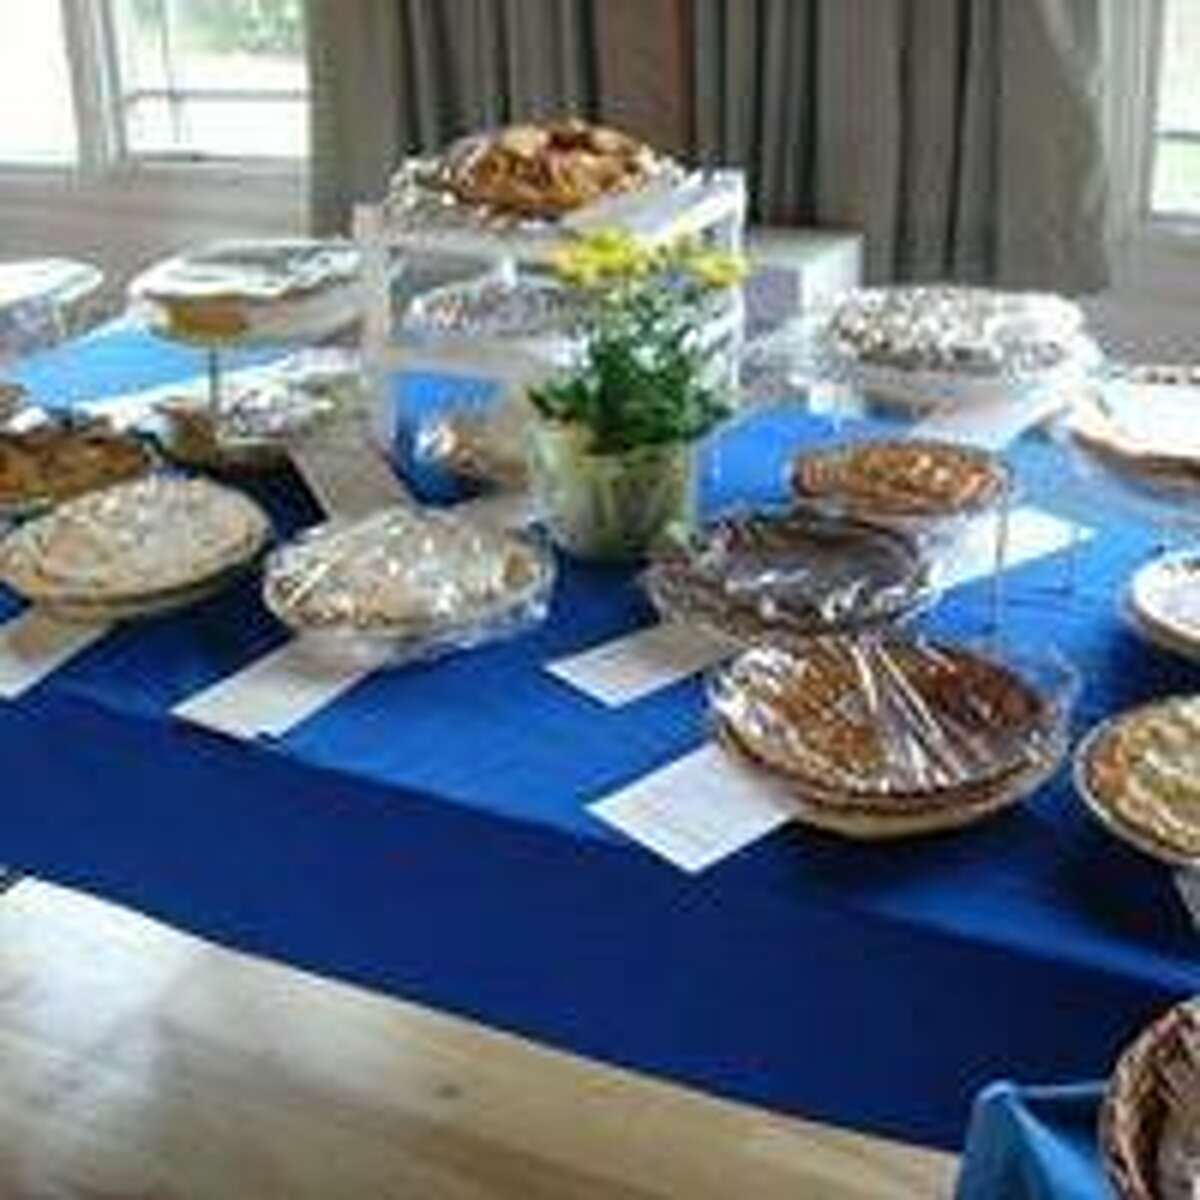 Kent Affordable Housing will hold a weekend of events Oct. 25-27, including a pie and dessert sale.